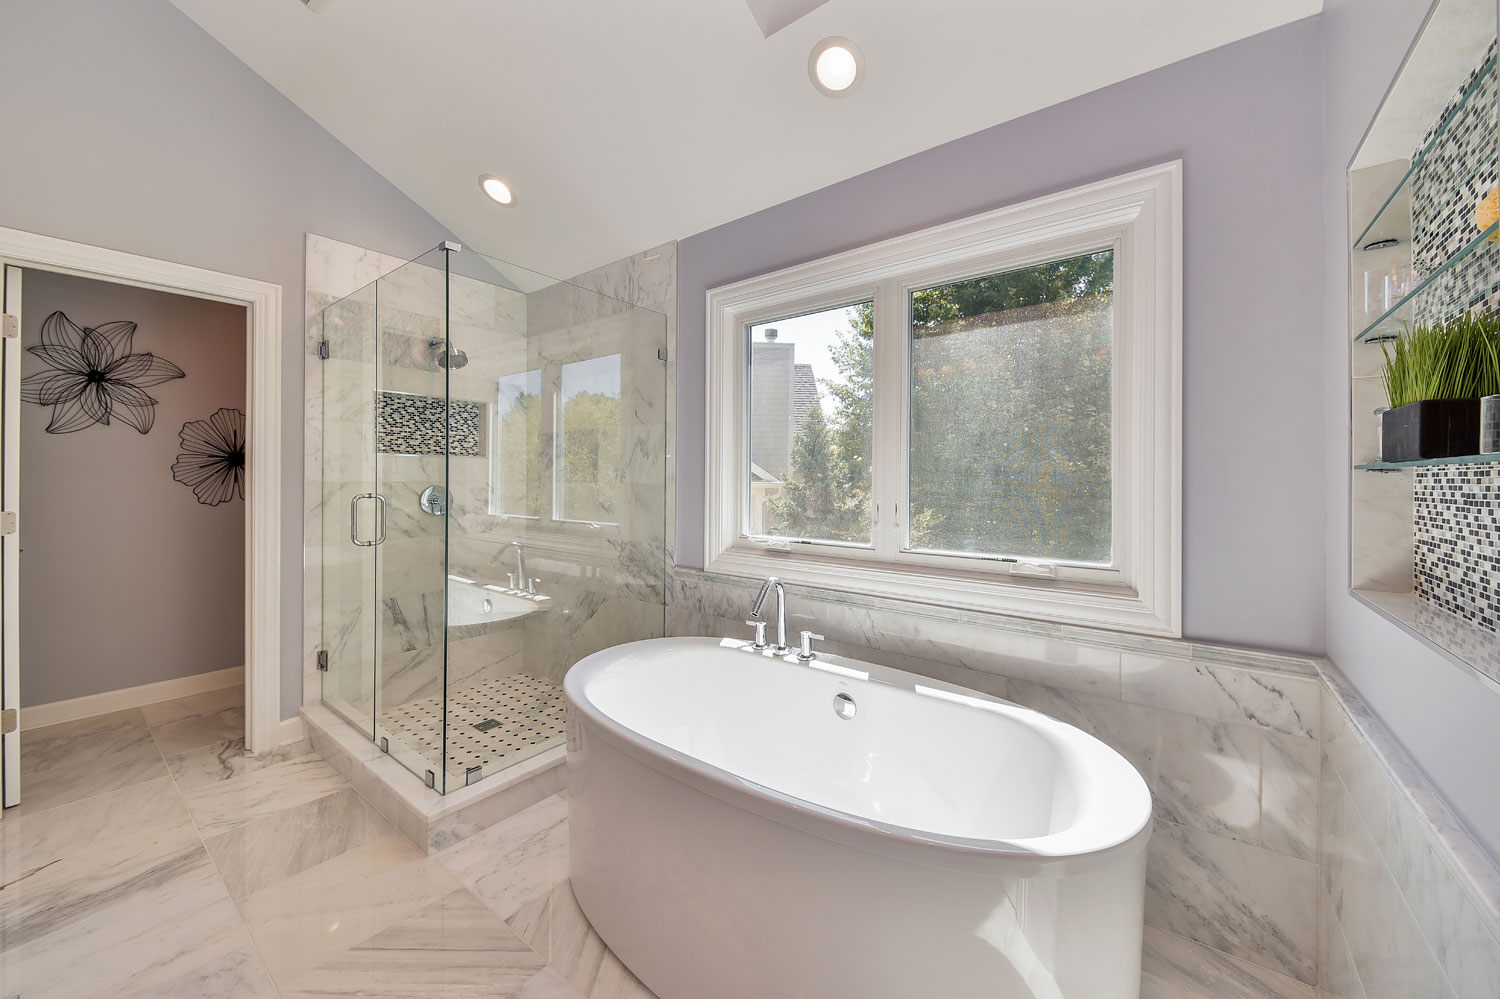 Doug S Master Bathroom Remodel Pictures Home